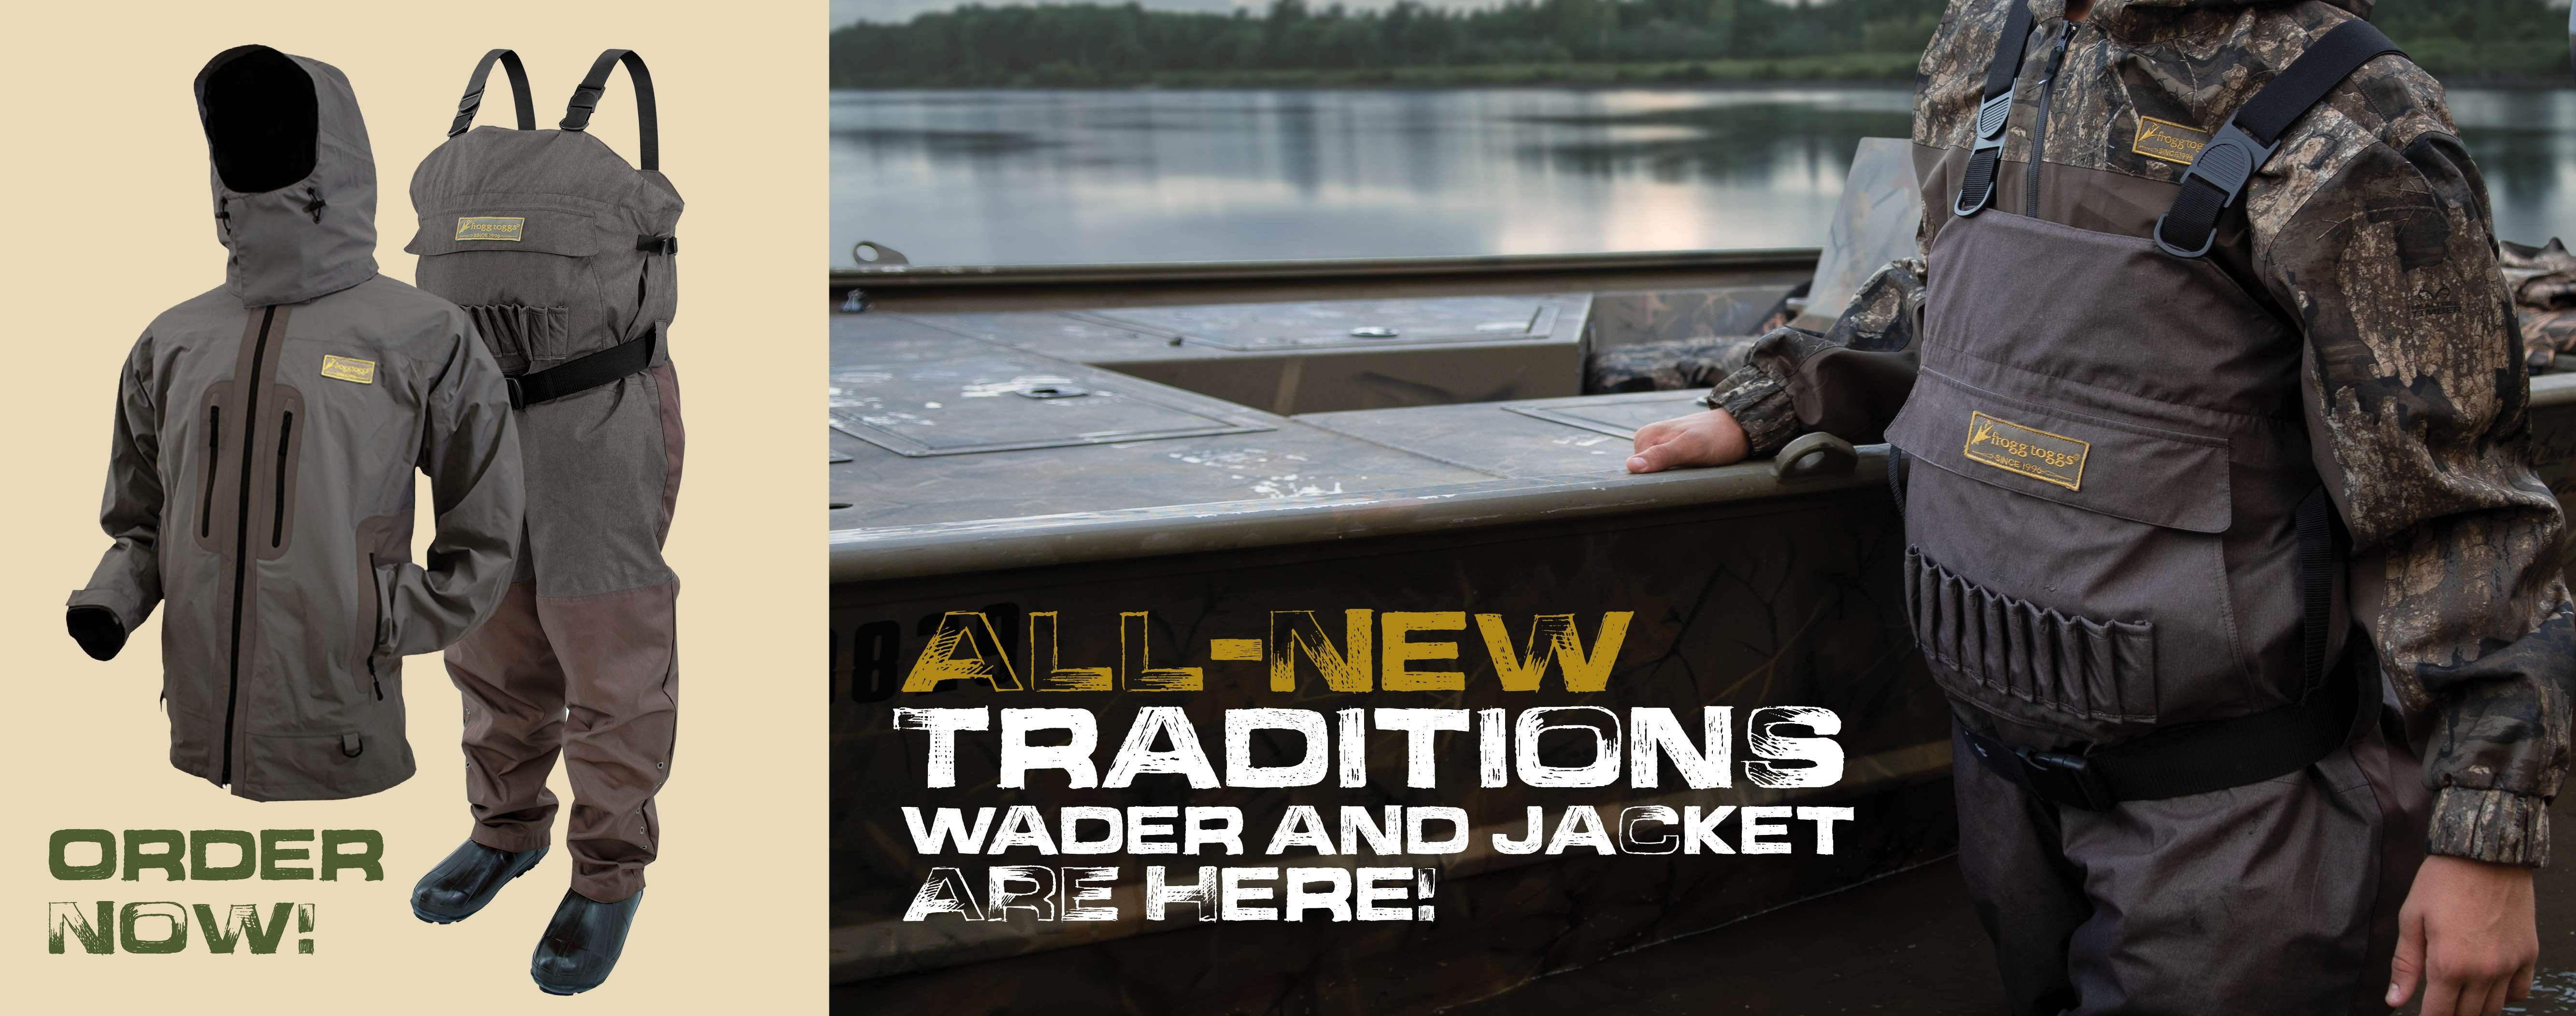 All New Traditions Wader and Jacket Are Here